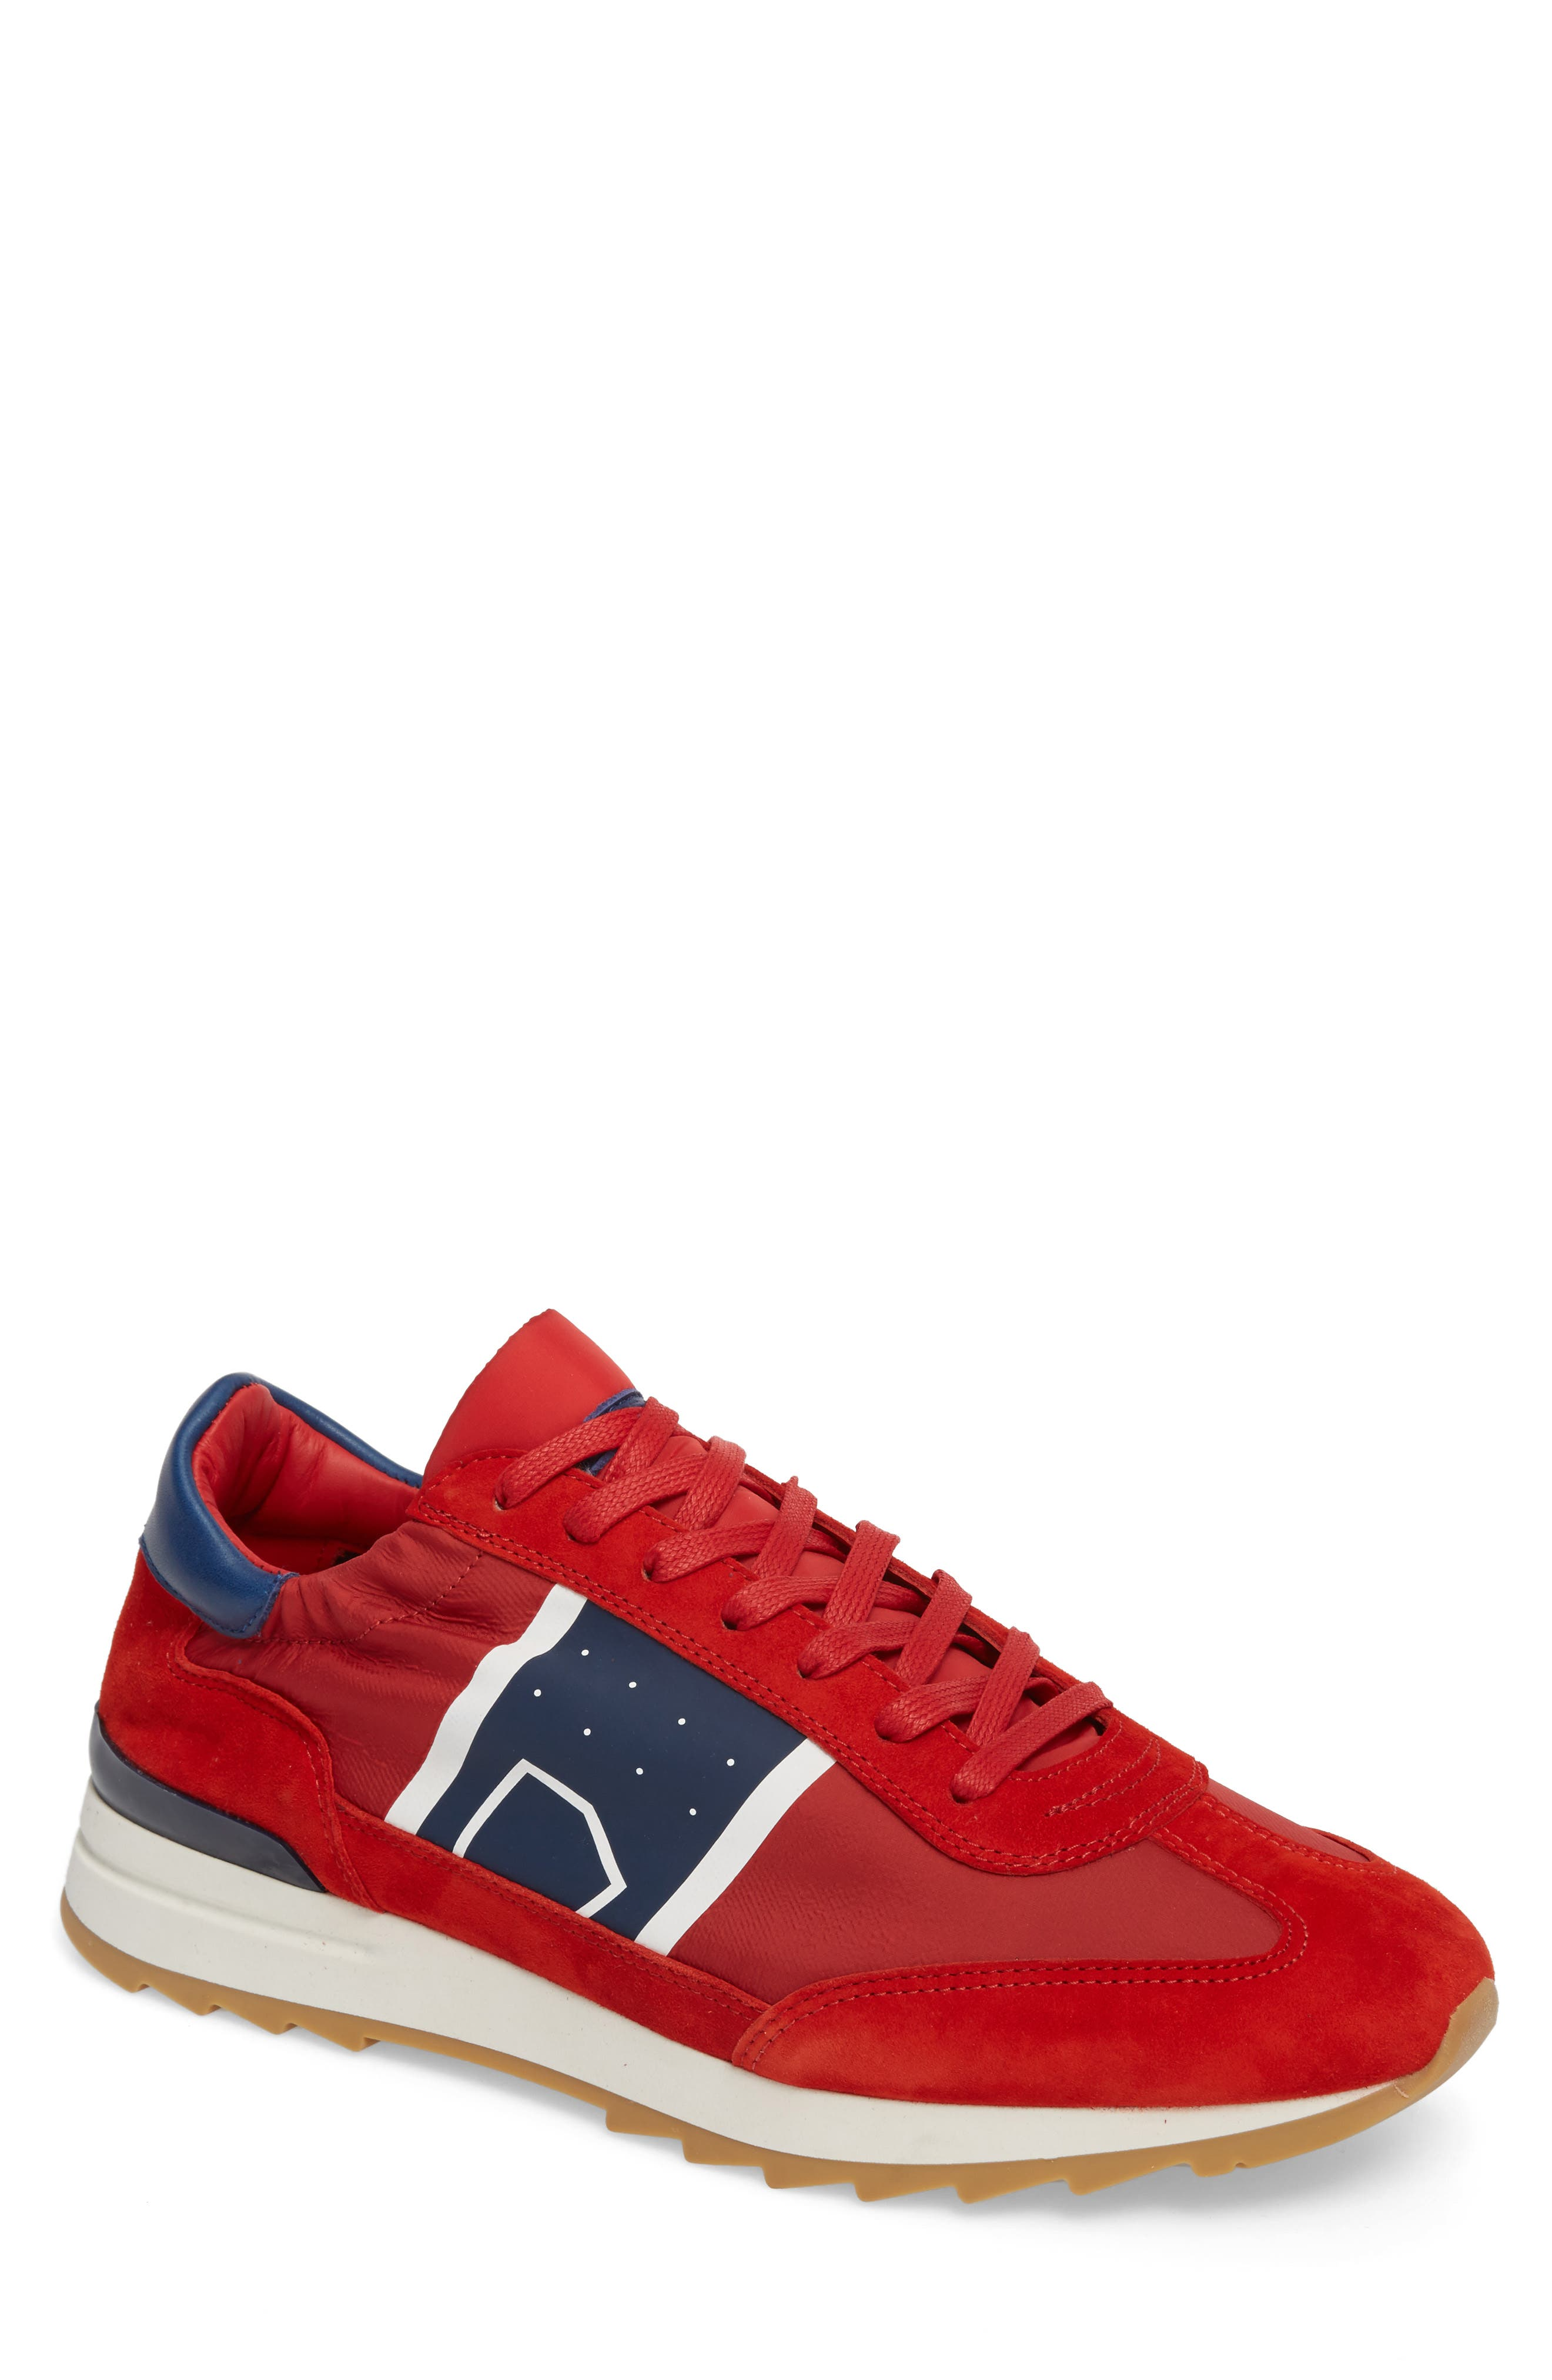 Toujours Sneaker,                             Main thumbnail 1, color,                             Red/ Blue